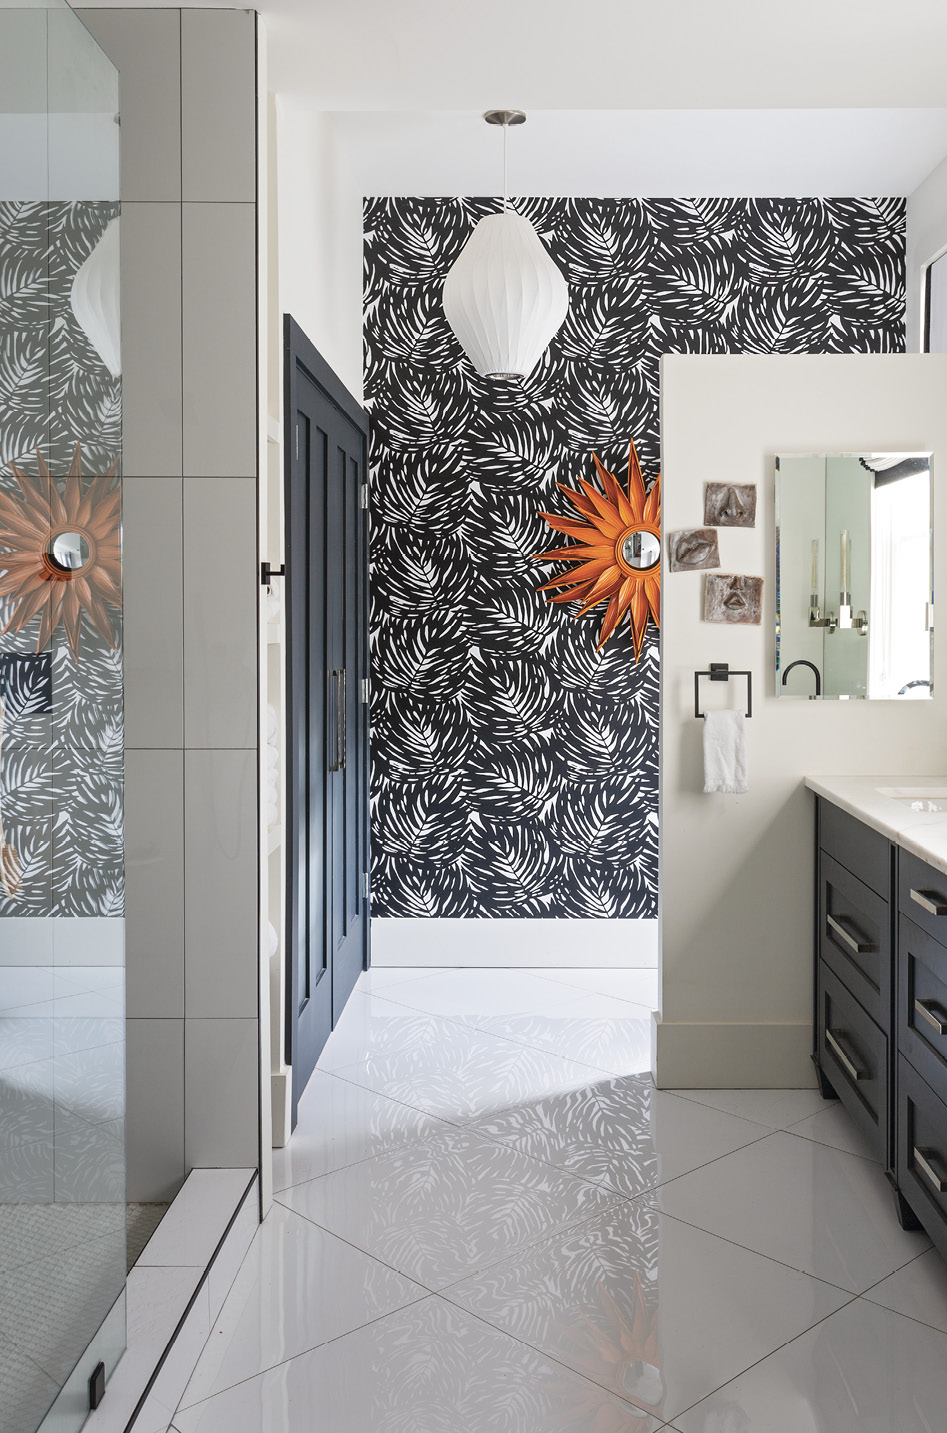 Space Saver: The master bath required significant reconfiguring—gone are the bathtub, window, and door to the piazza—to accommodate a closet, laundry room, and walk-in shower. An orange mirror provides a pop of color on the graphic palm frond wallpaper from Serena & Lily.